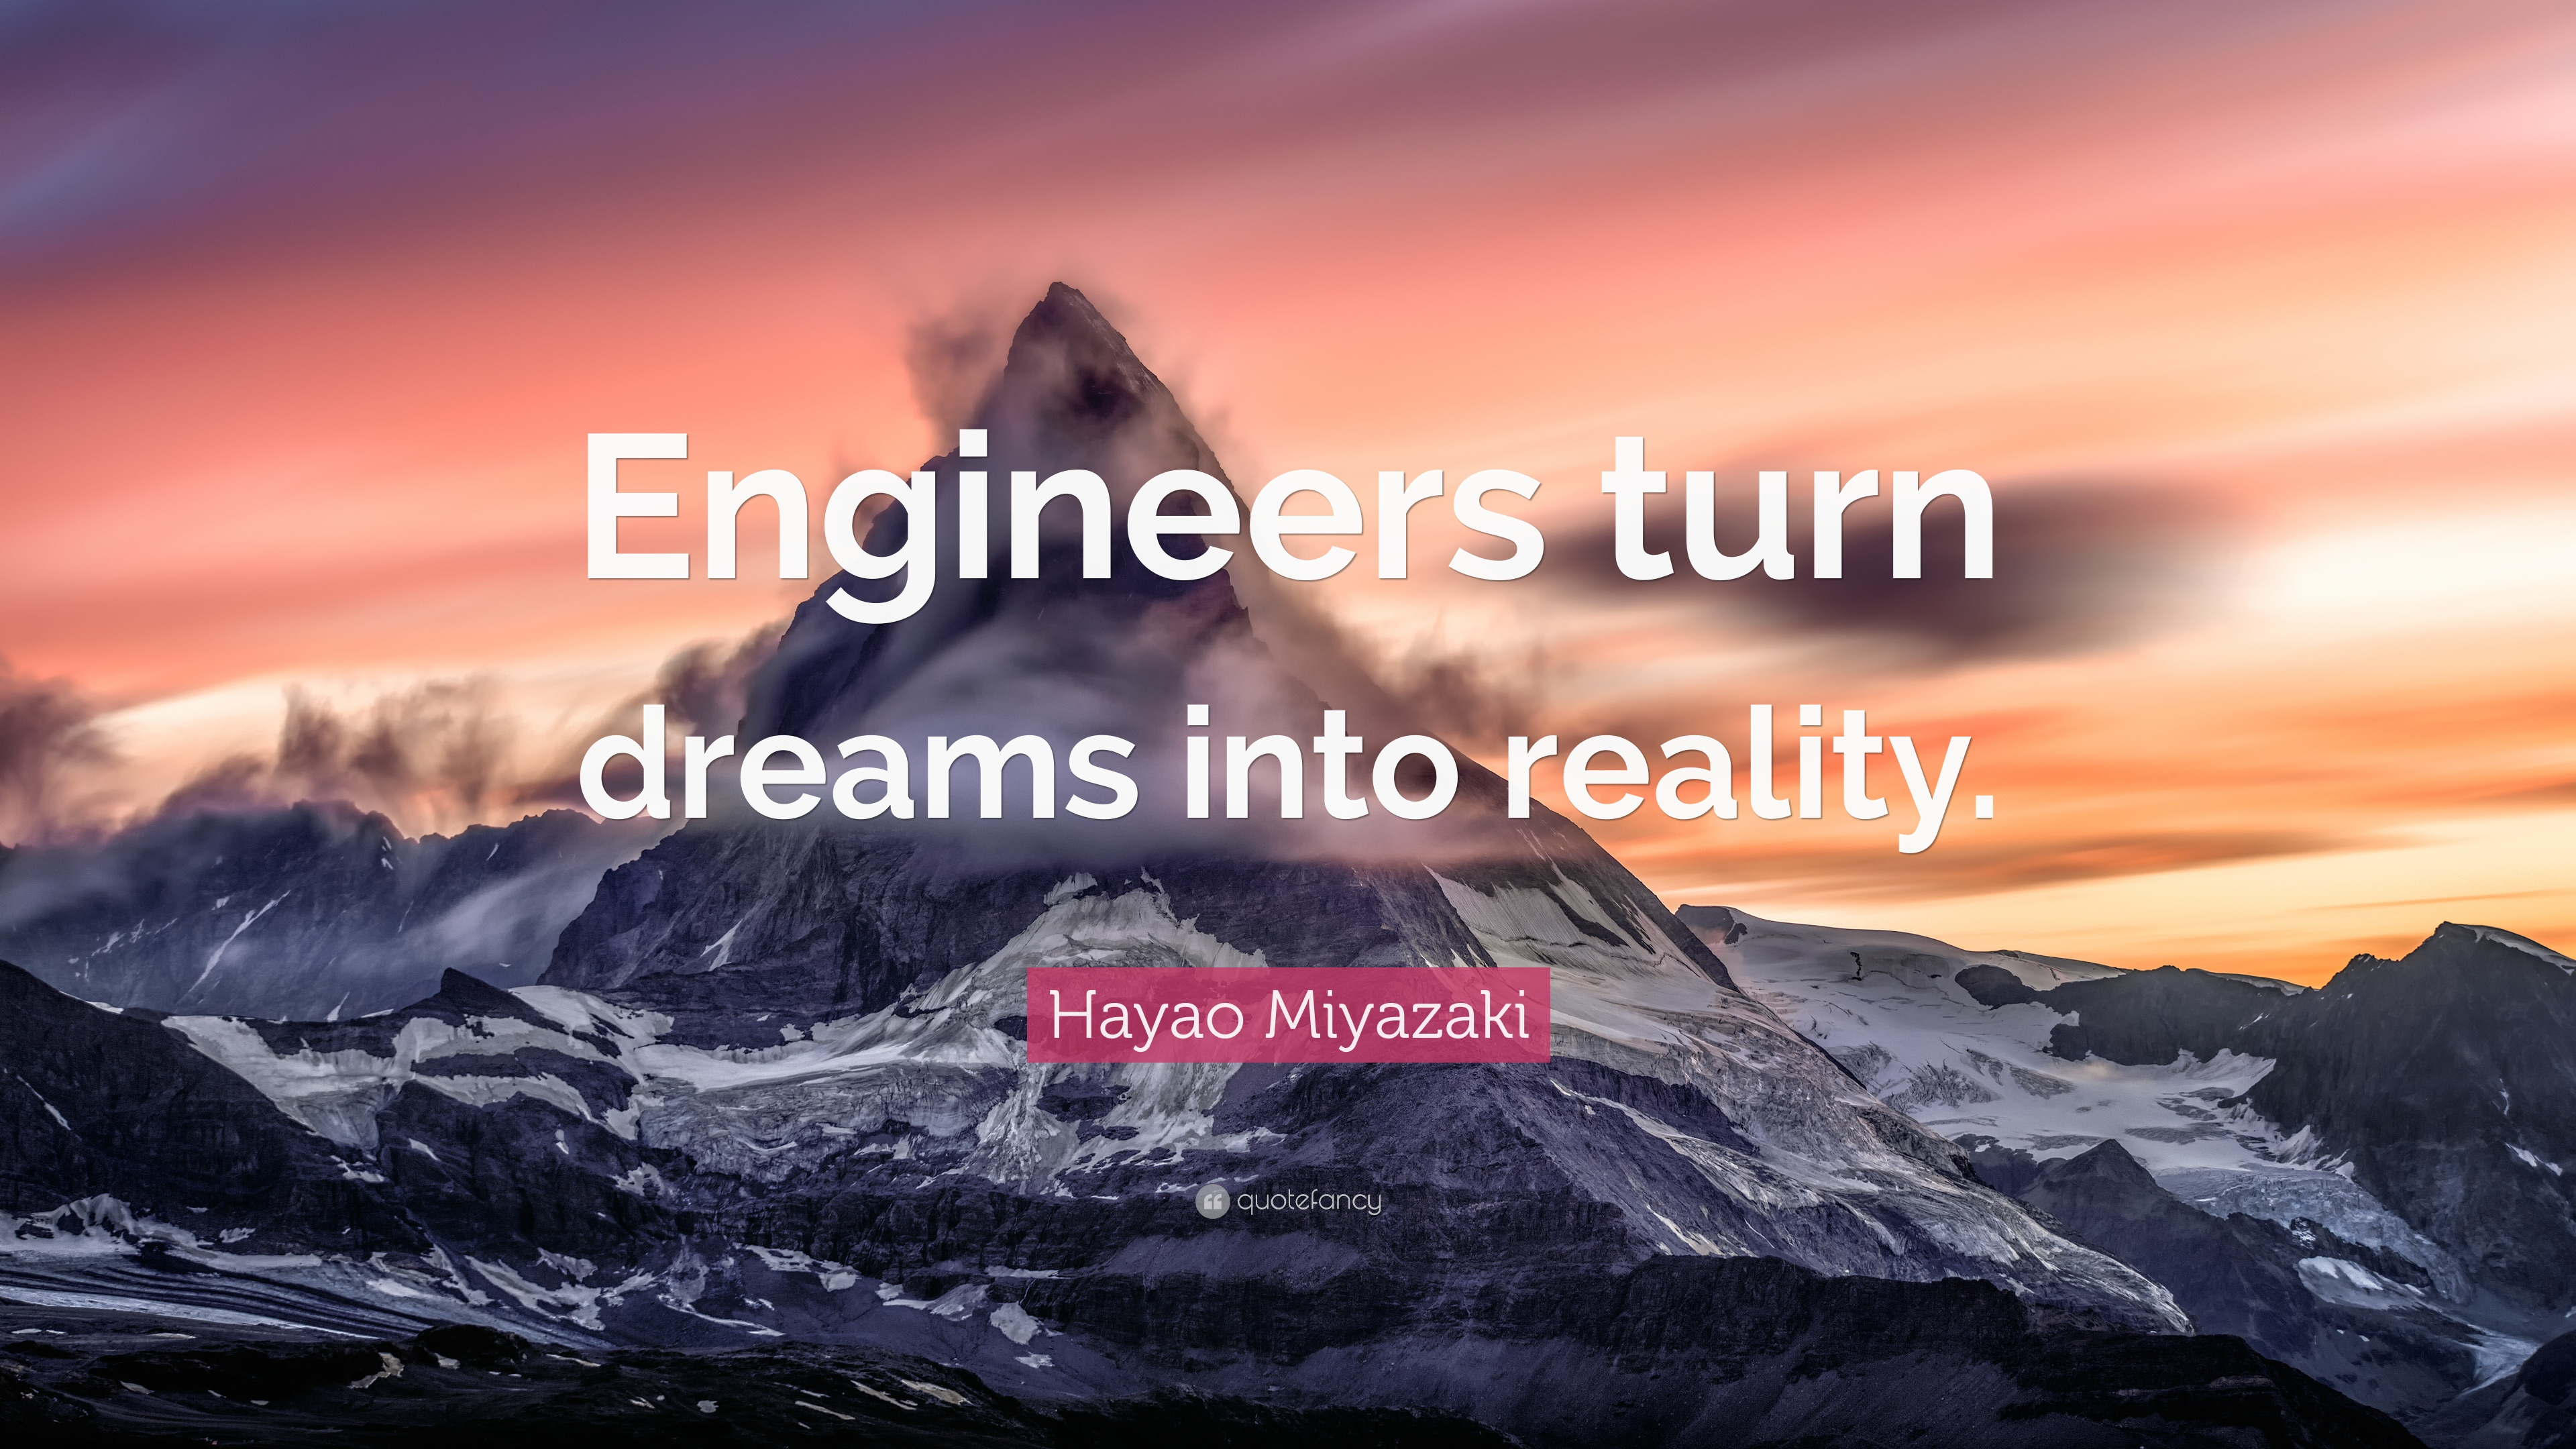 Hayao Miyazaki Quote u201cEngineers turn dreams into